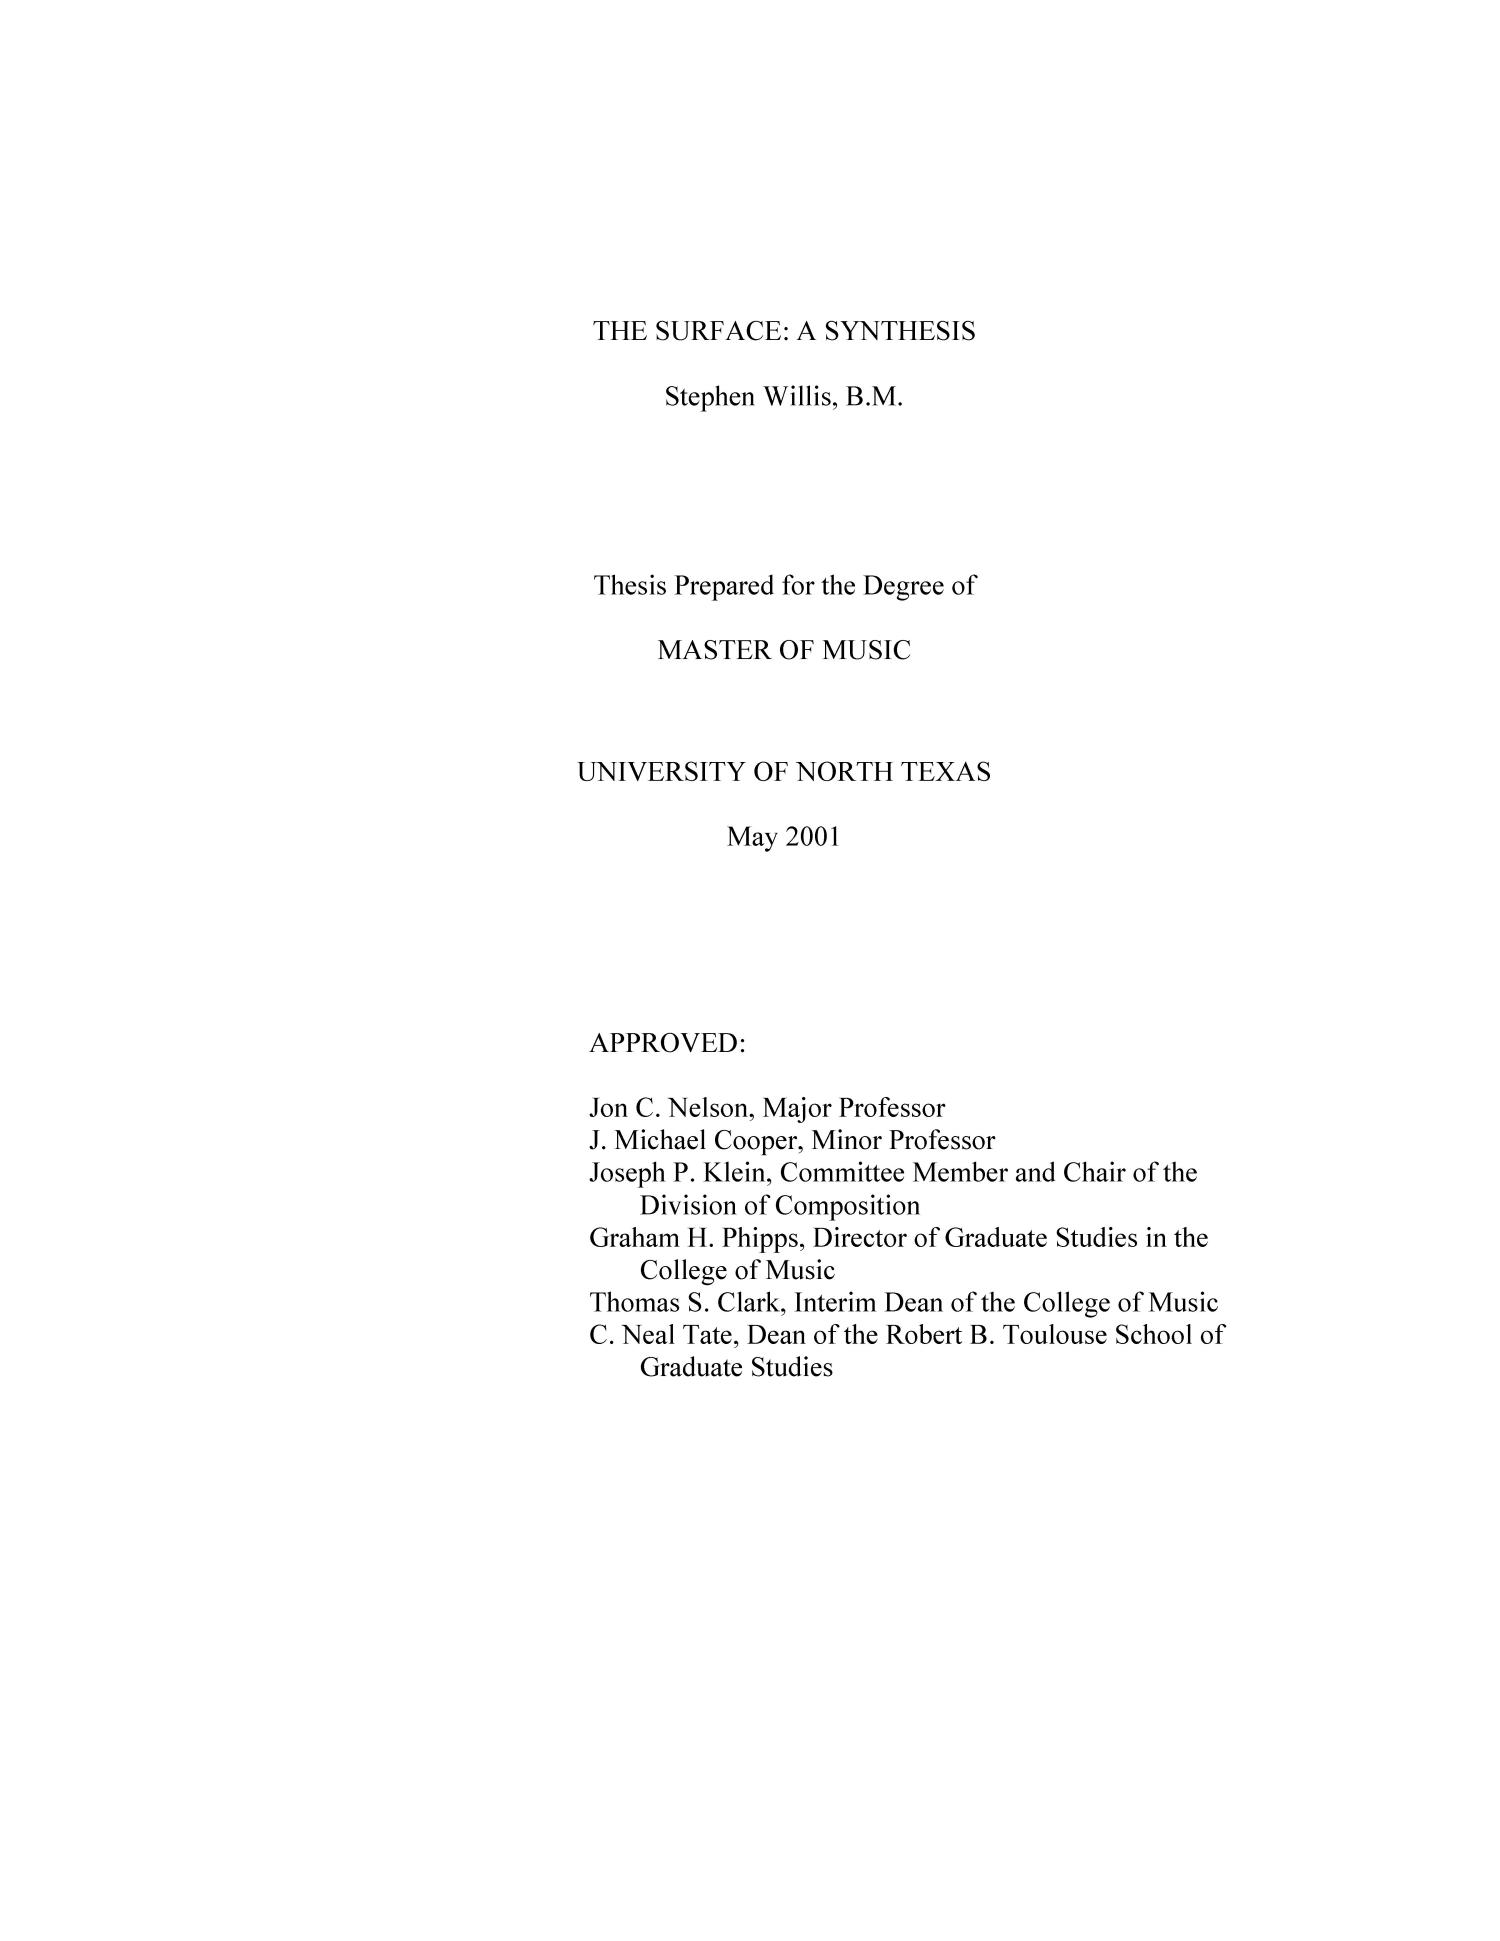 Dissertations & theses full text